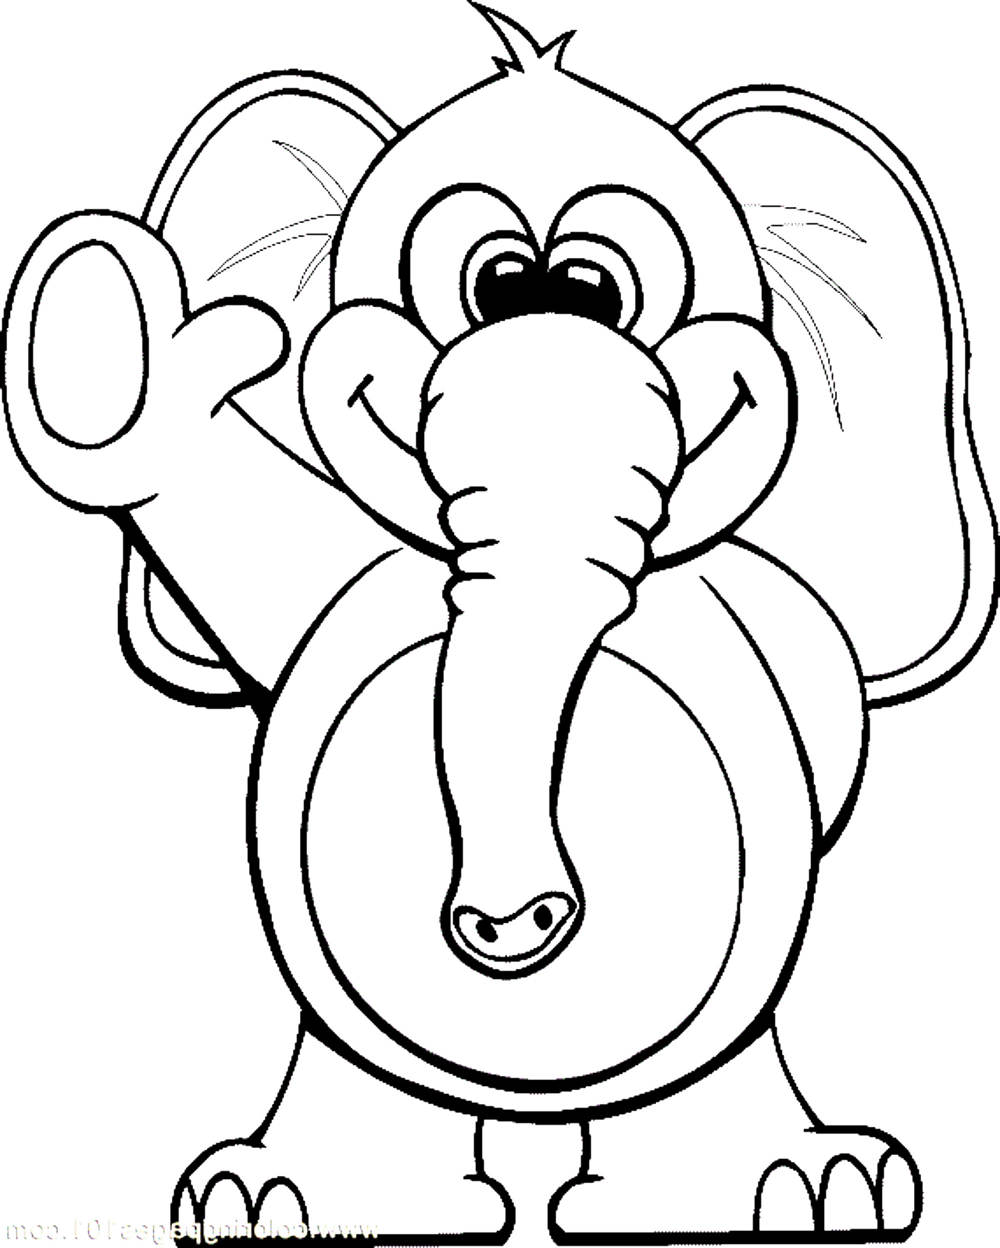 printable elephant coloring pages elephant coloring pages coloring home elephant coloring printable pages